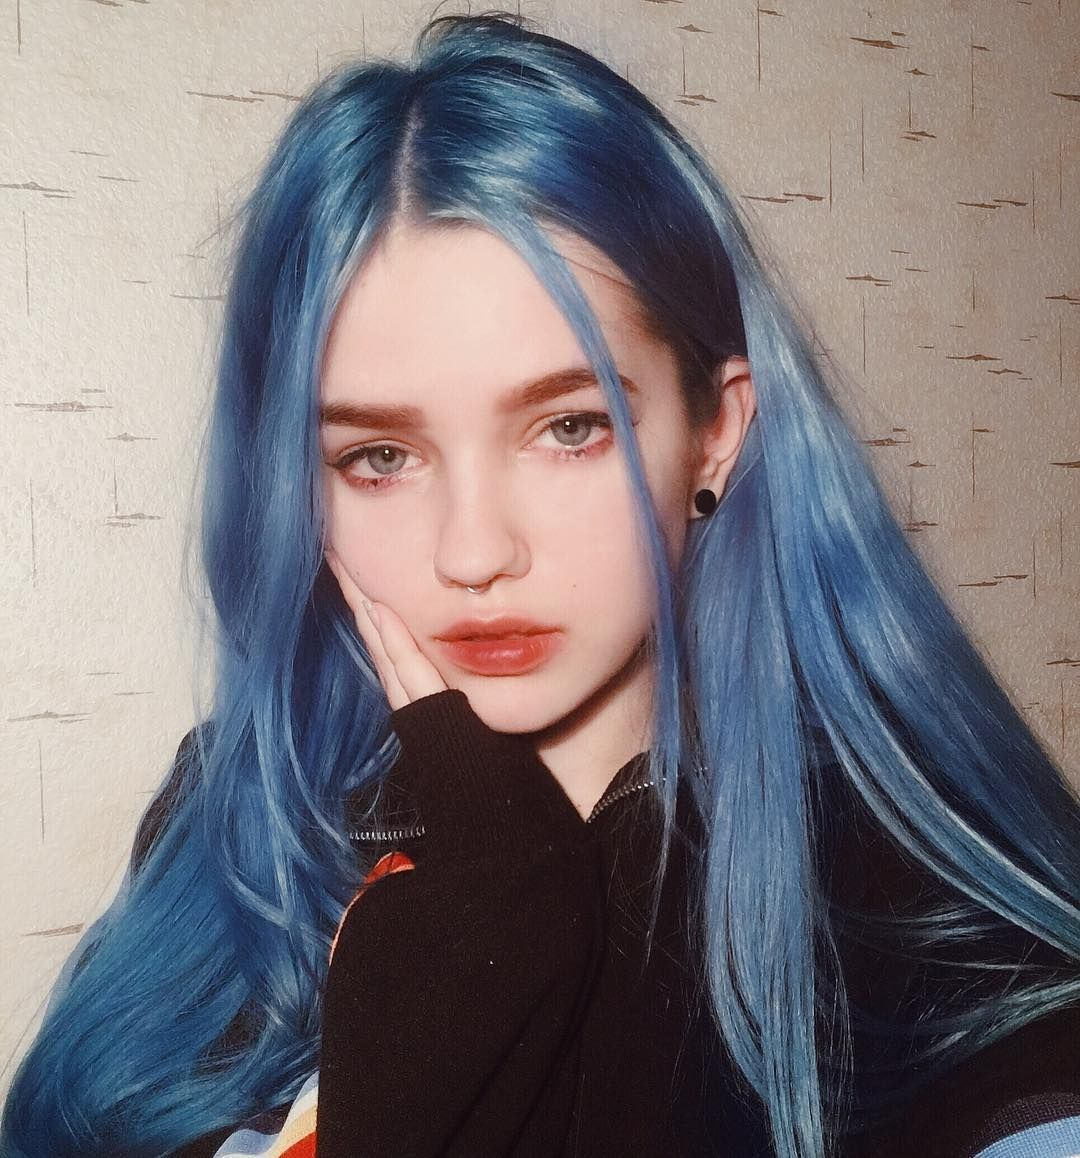 Repost Stunning Blue Hair Syntheticwigs Bluehair